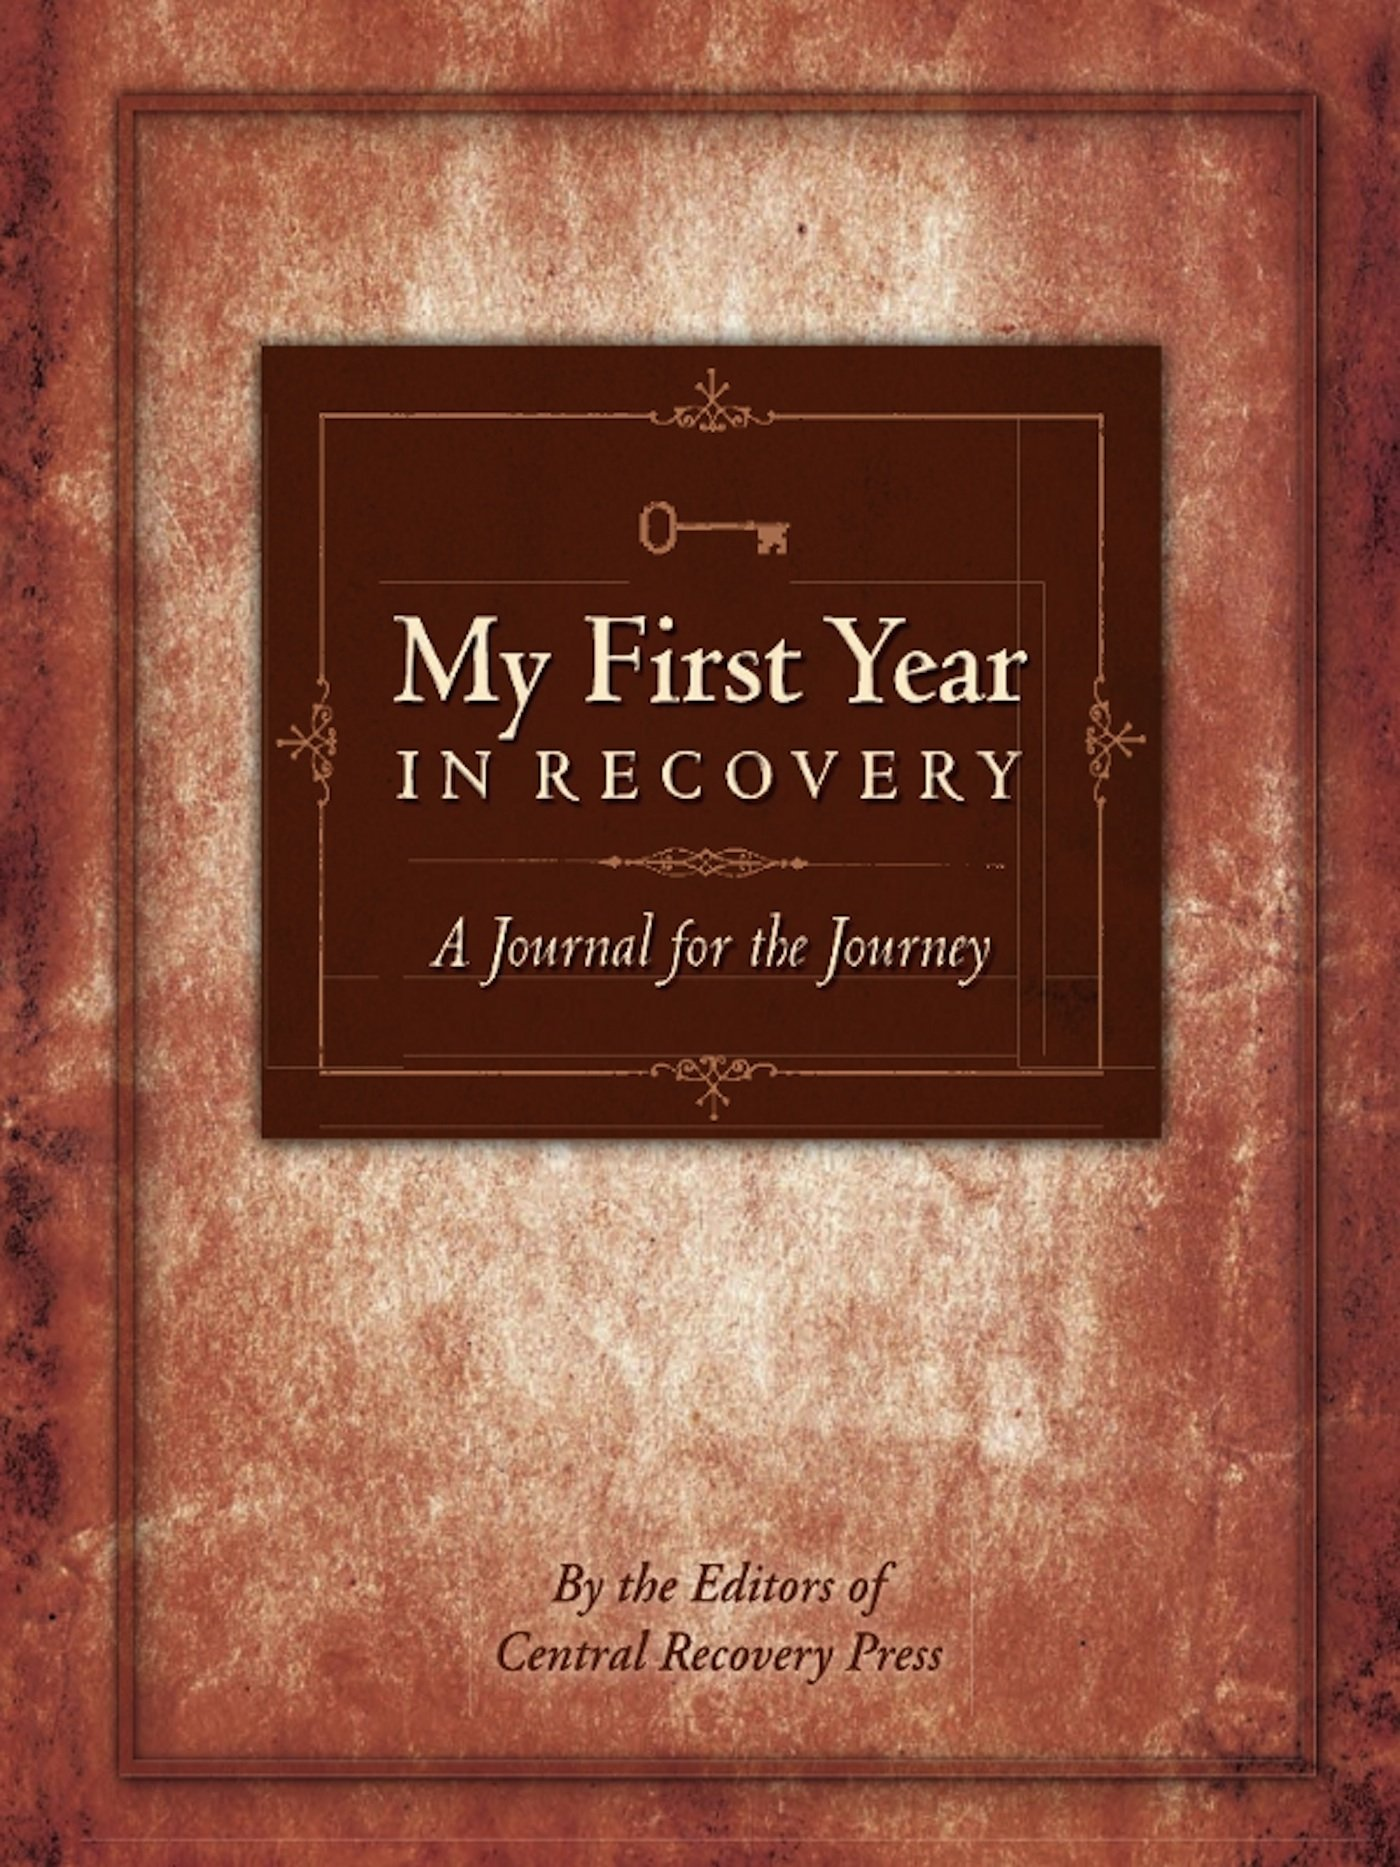 My First Year in Recovery: A Journal for the Journey pdf